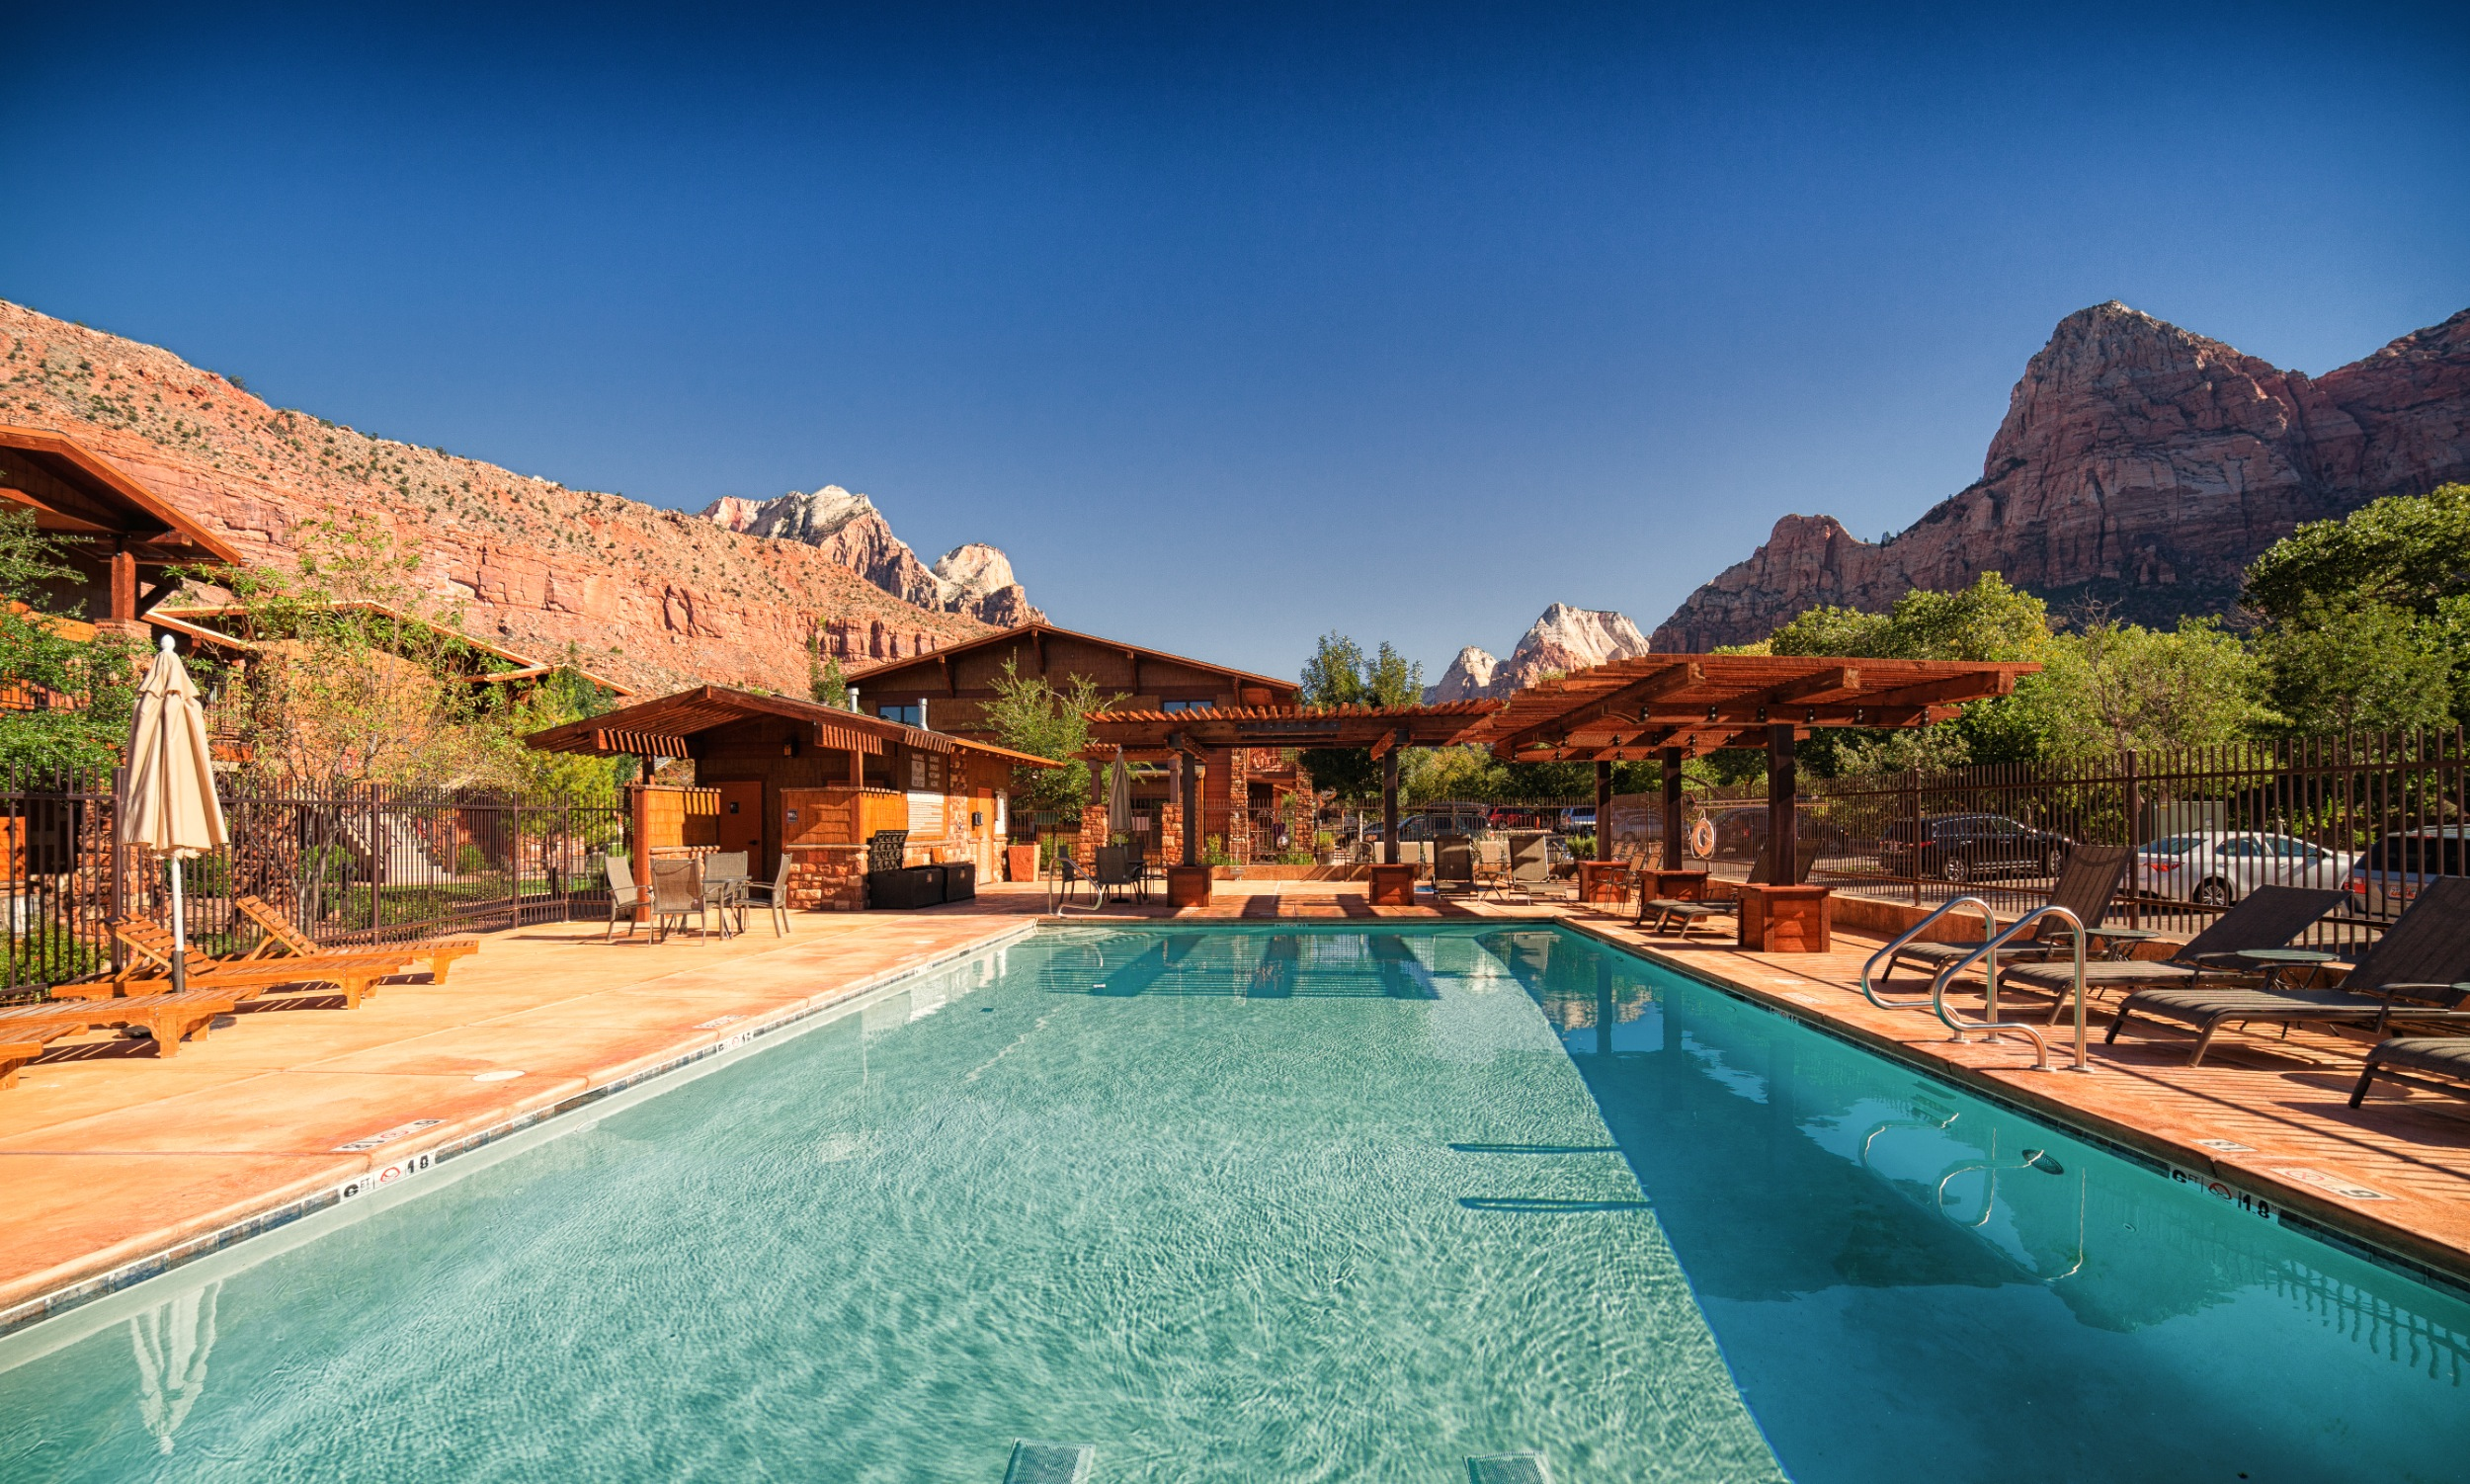 Pool Amp Spa Cable Mountain Lodge At Zion National Park